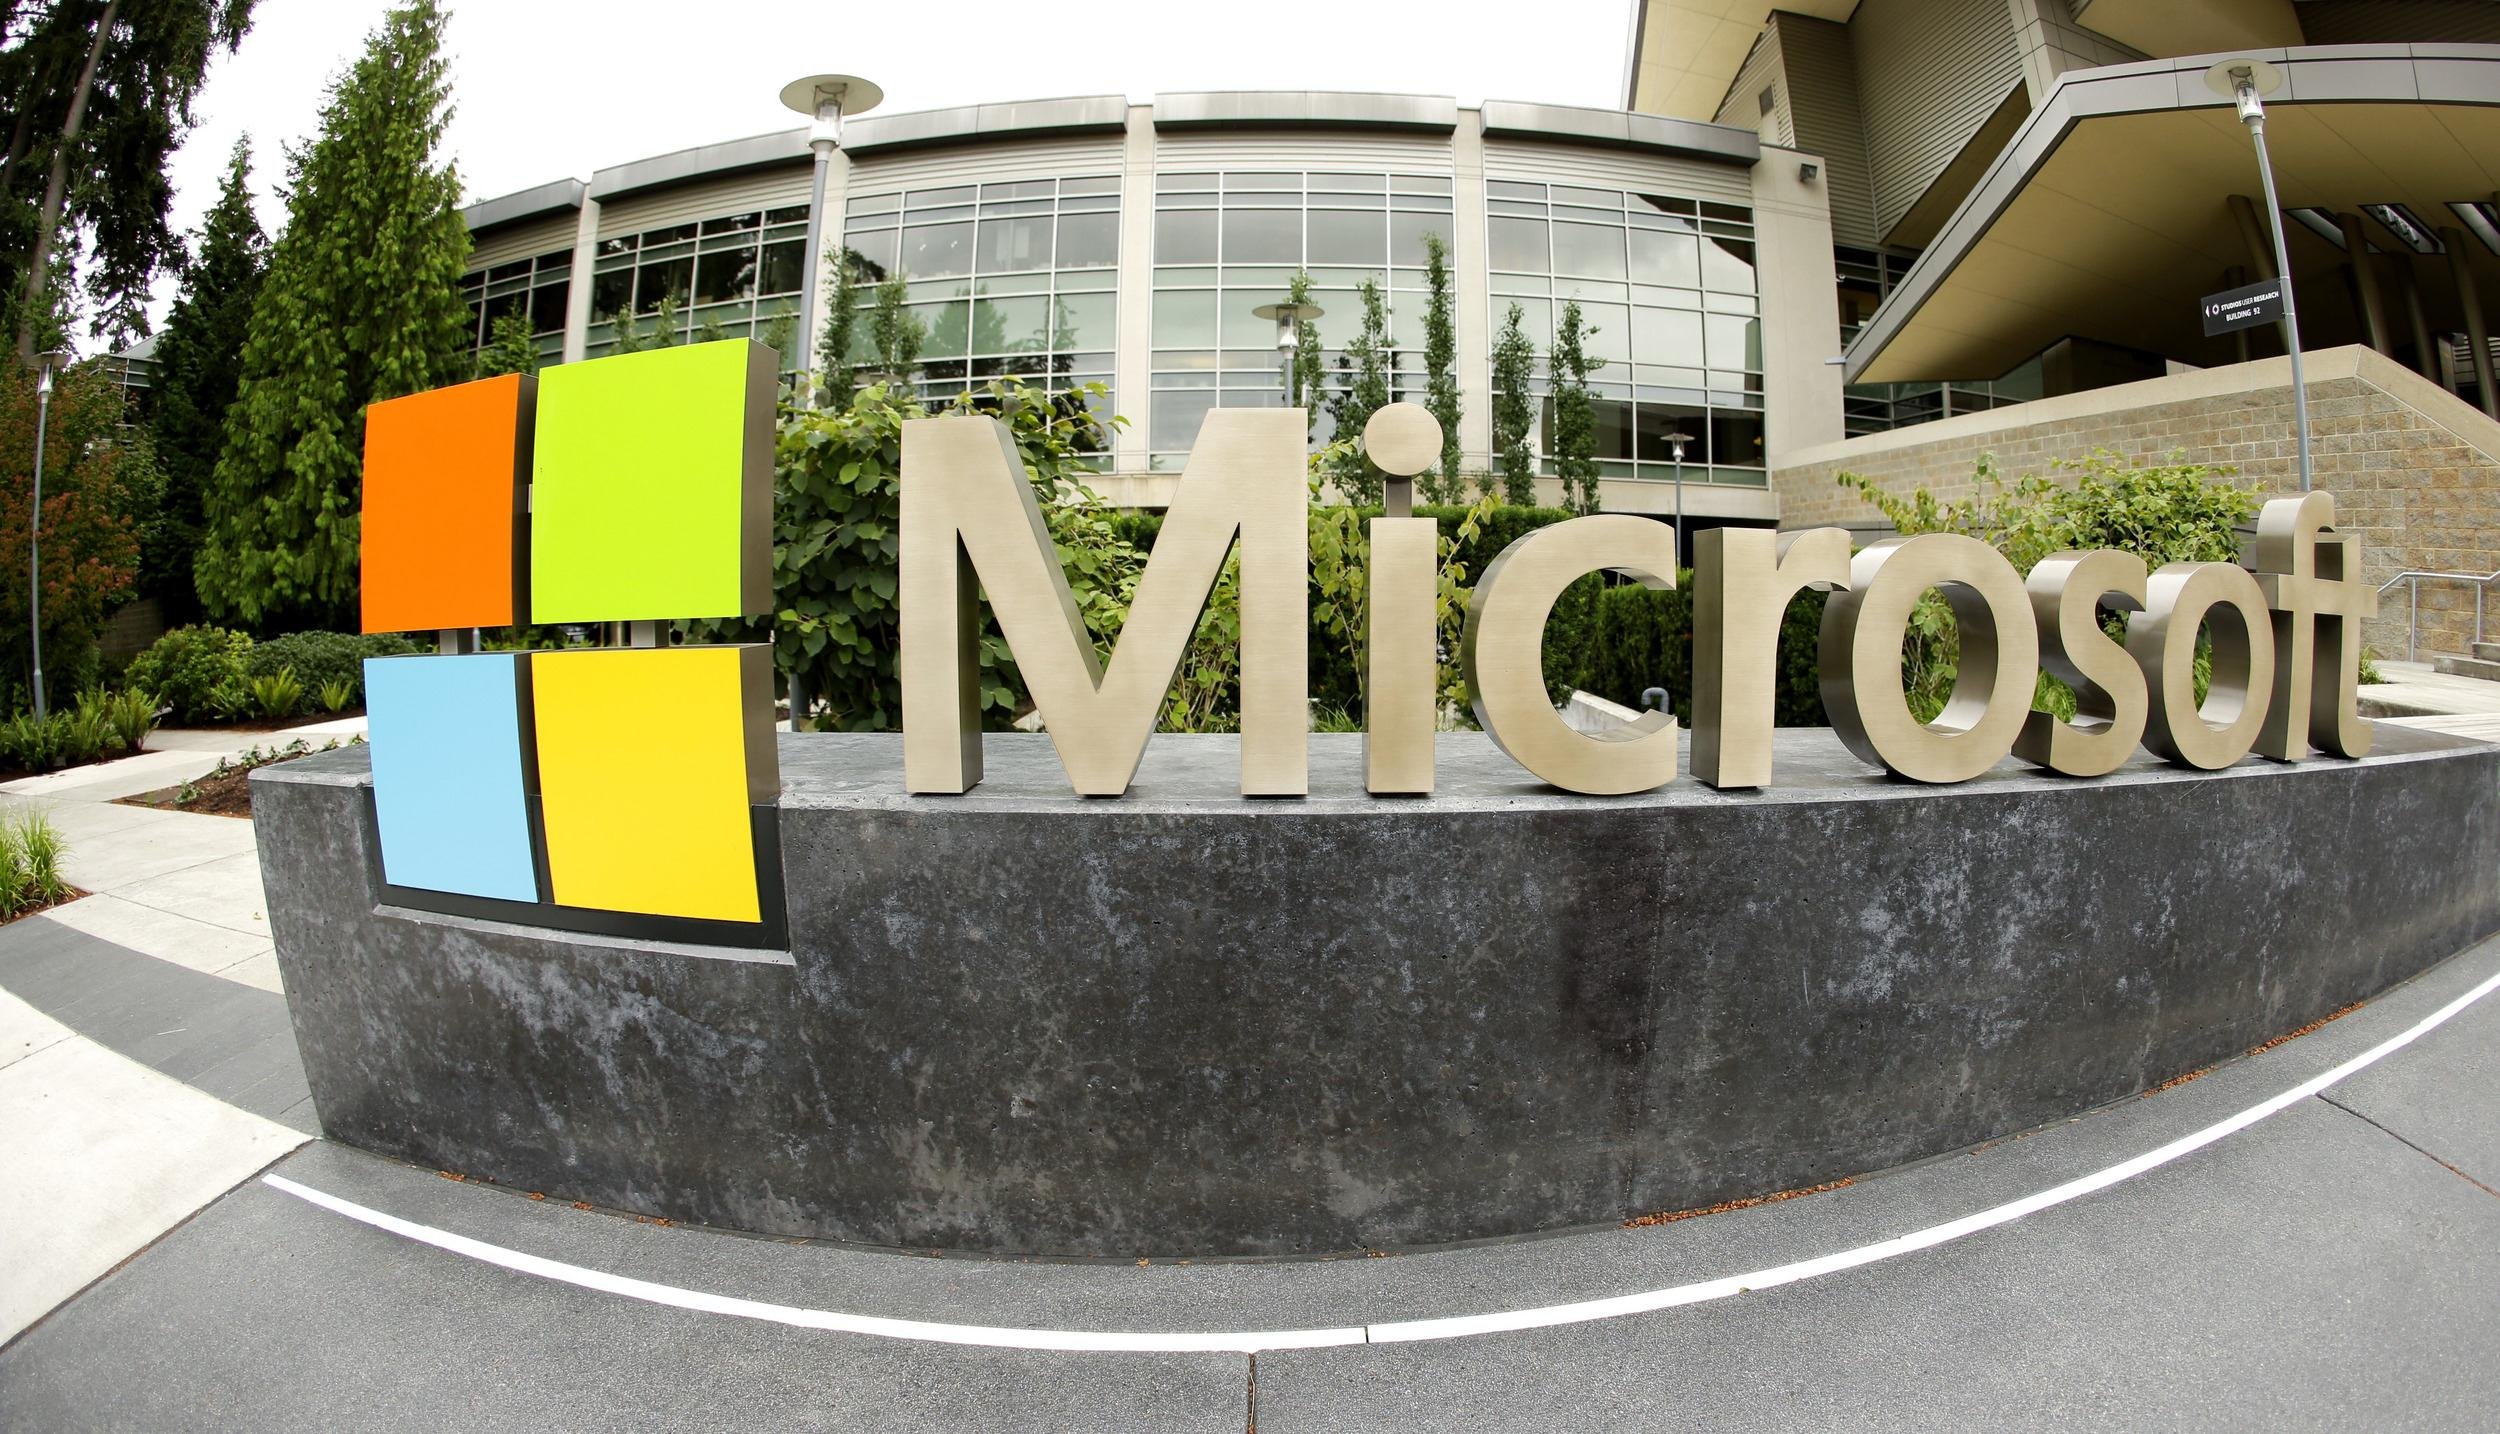 Microsoft announced it will lay off up to 18,000 workers over the next year.